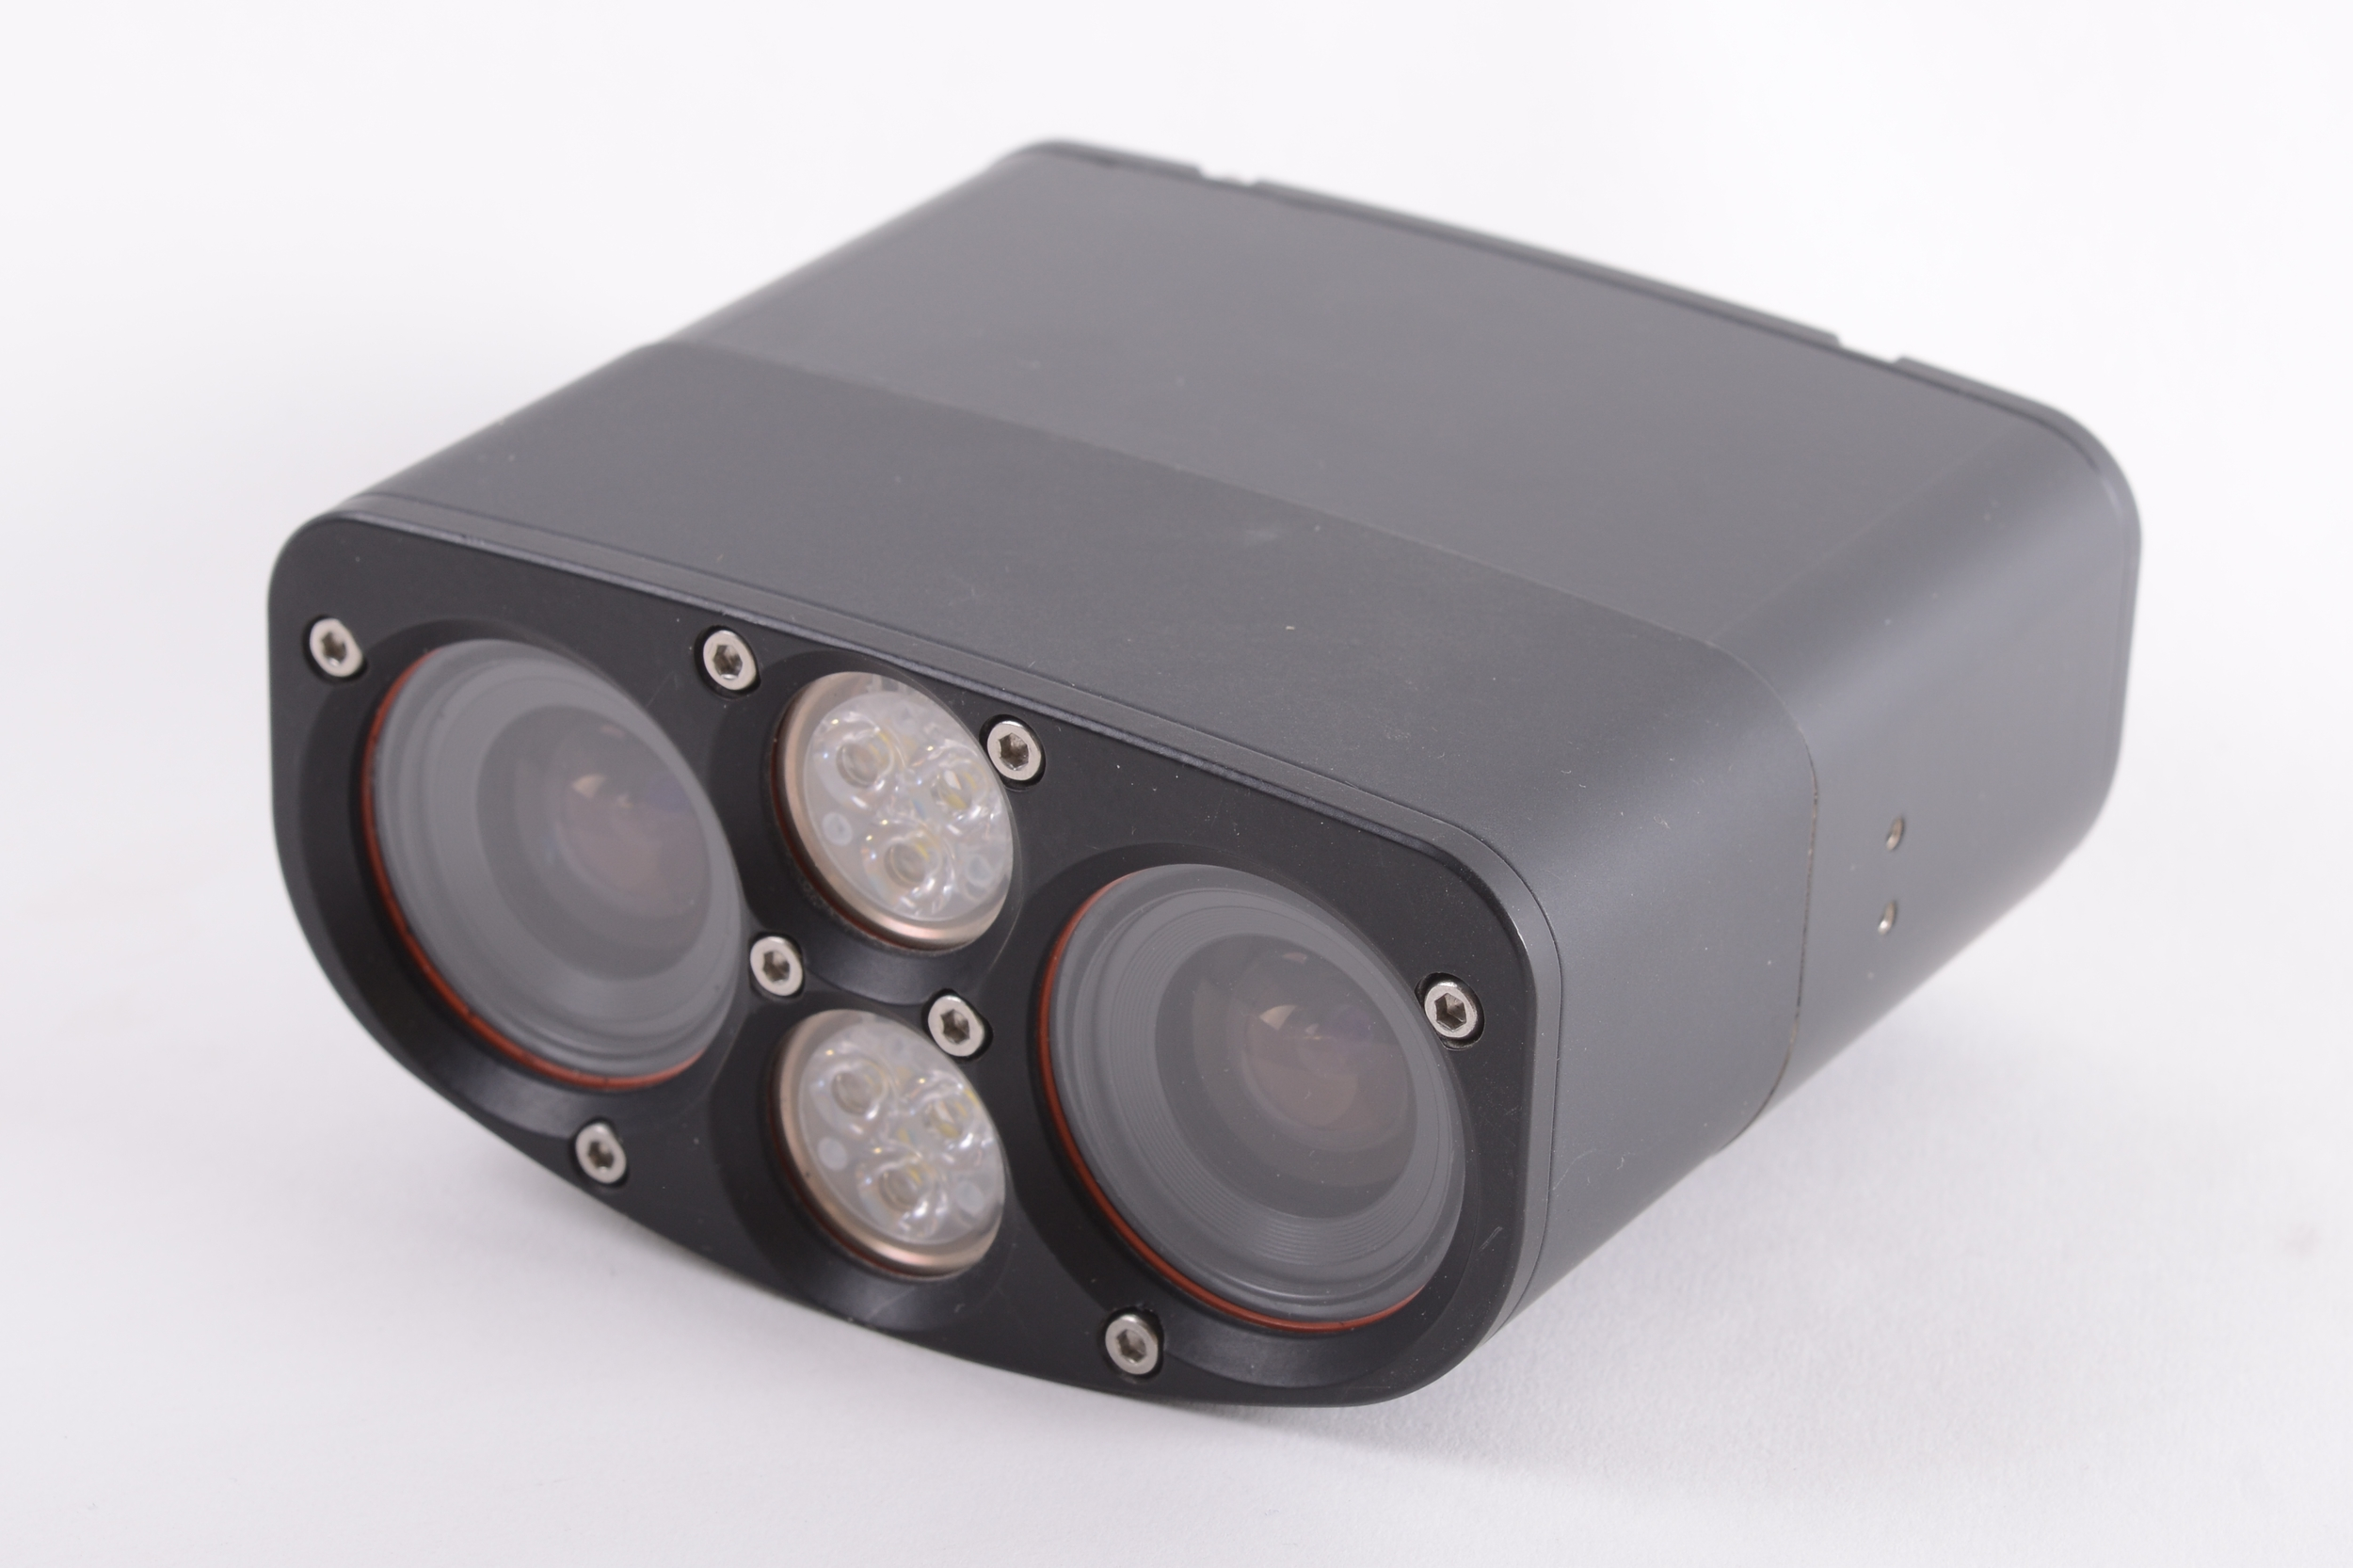 MultiSense S7: 3D Stereo and Video Sensor for Short Range Applications (offered with white or IR lighting)